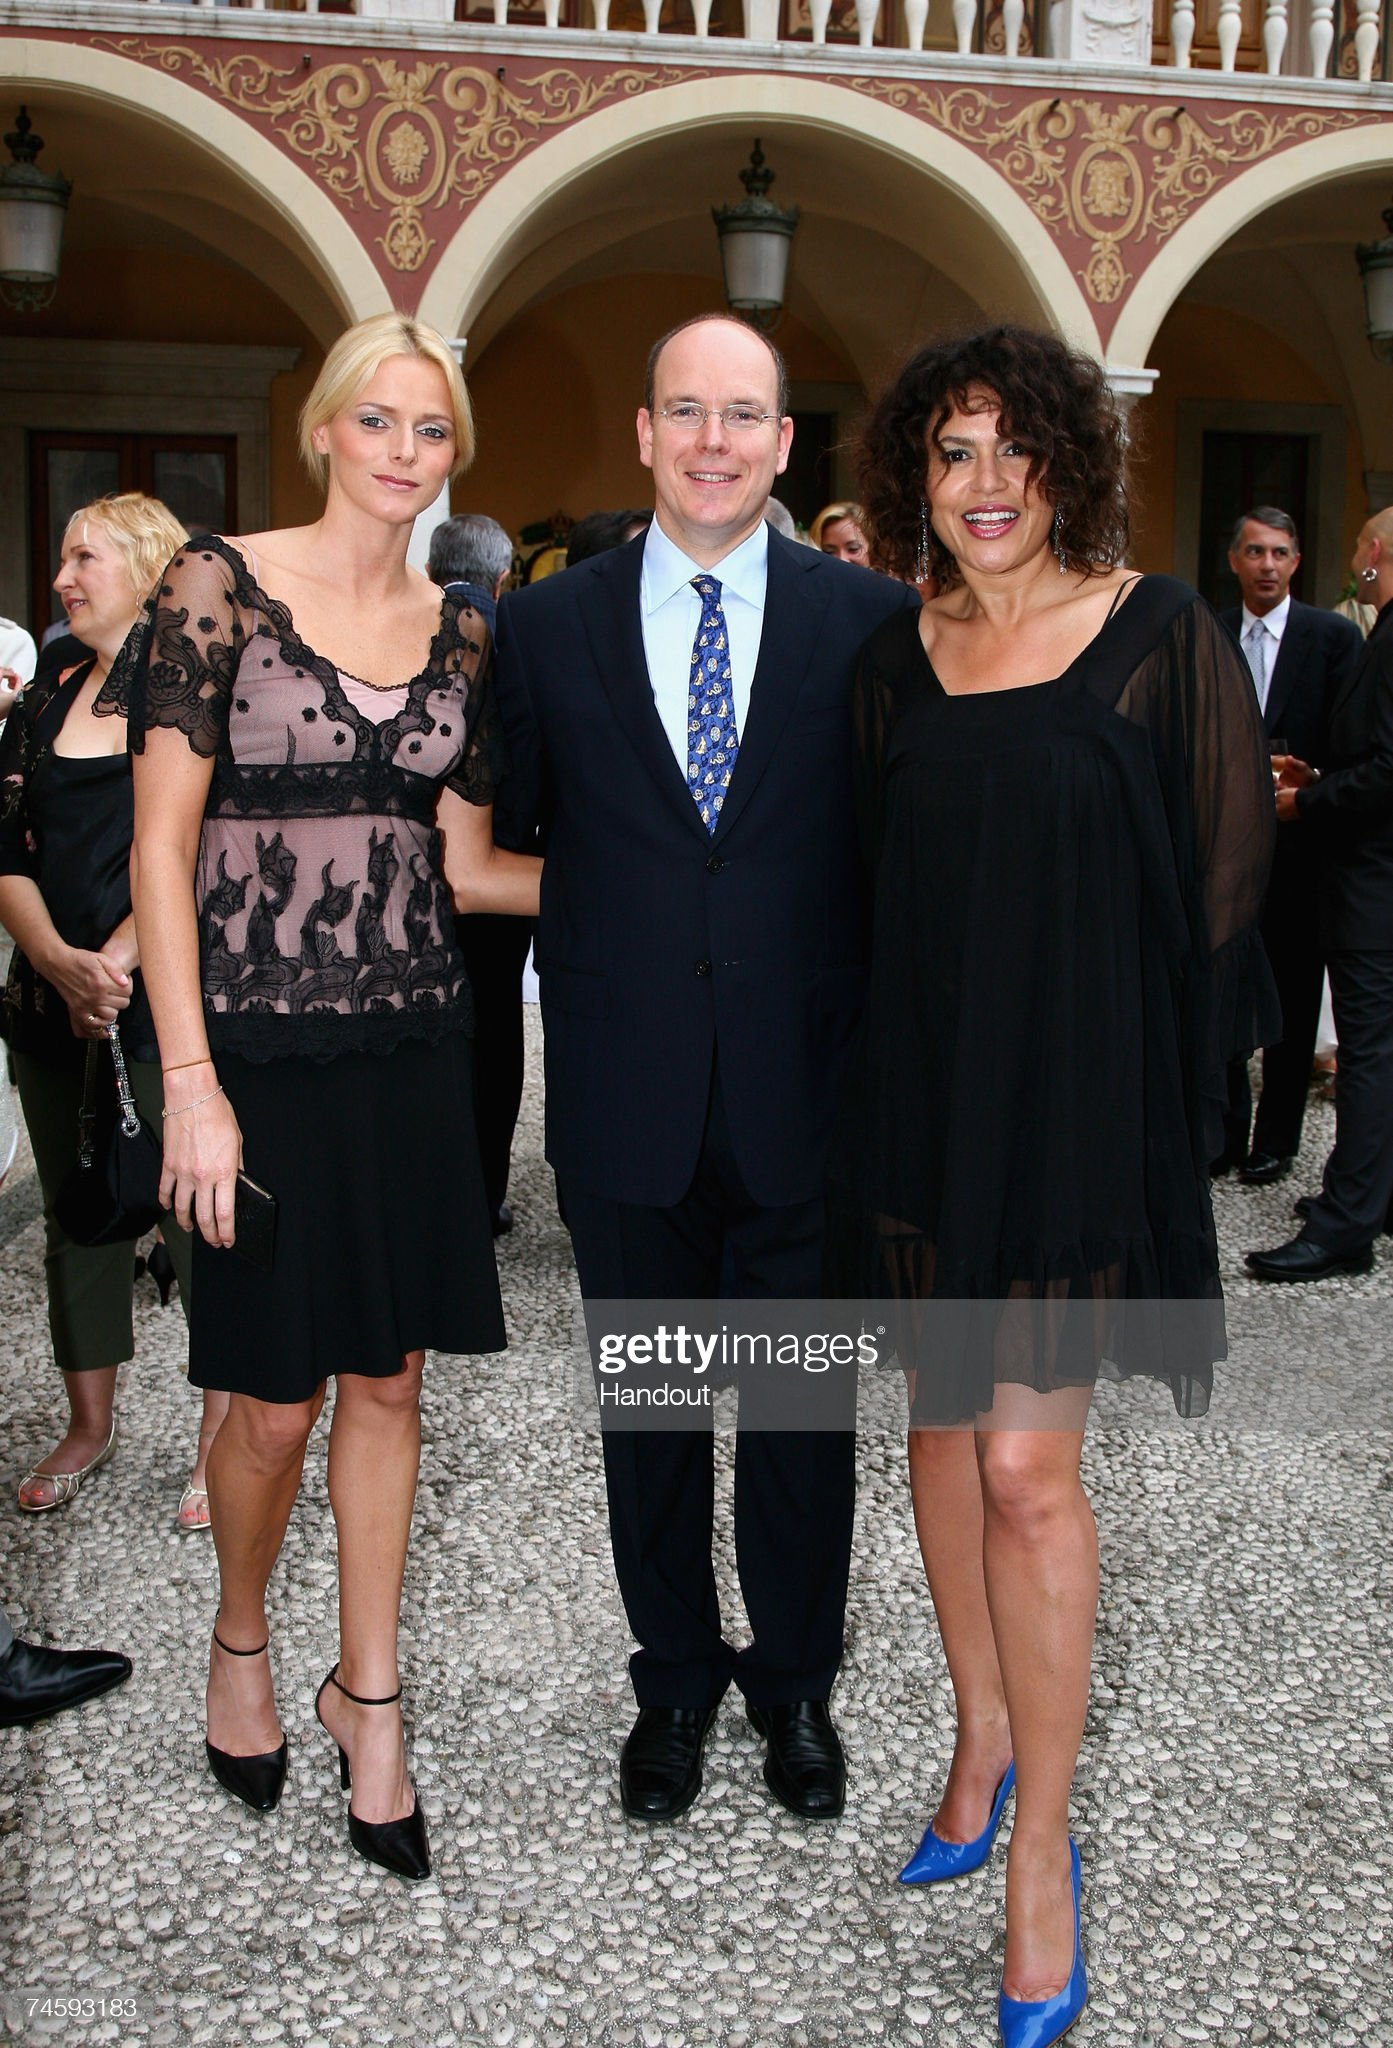 Monte Carlo Television Festival 2007 - Day 3 : News Photo